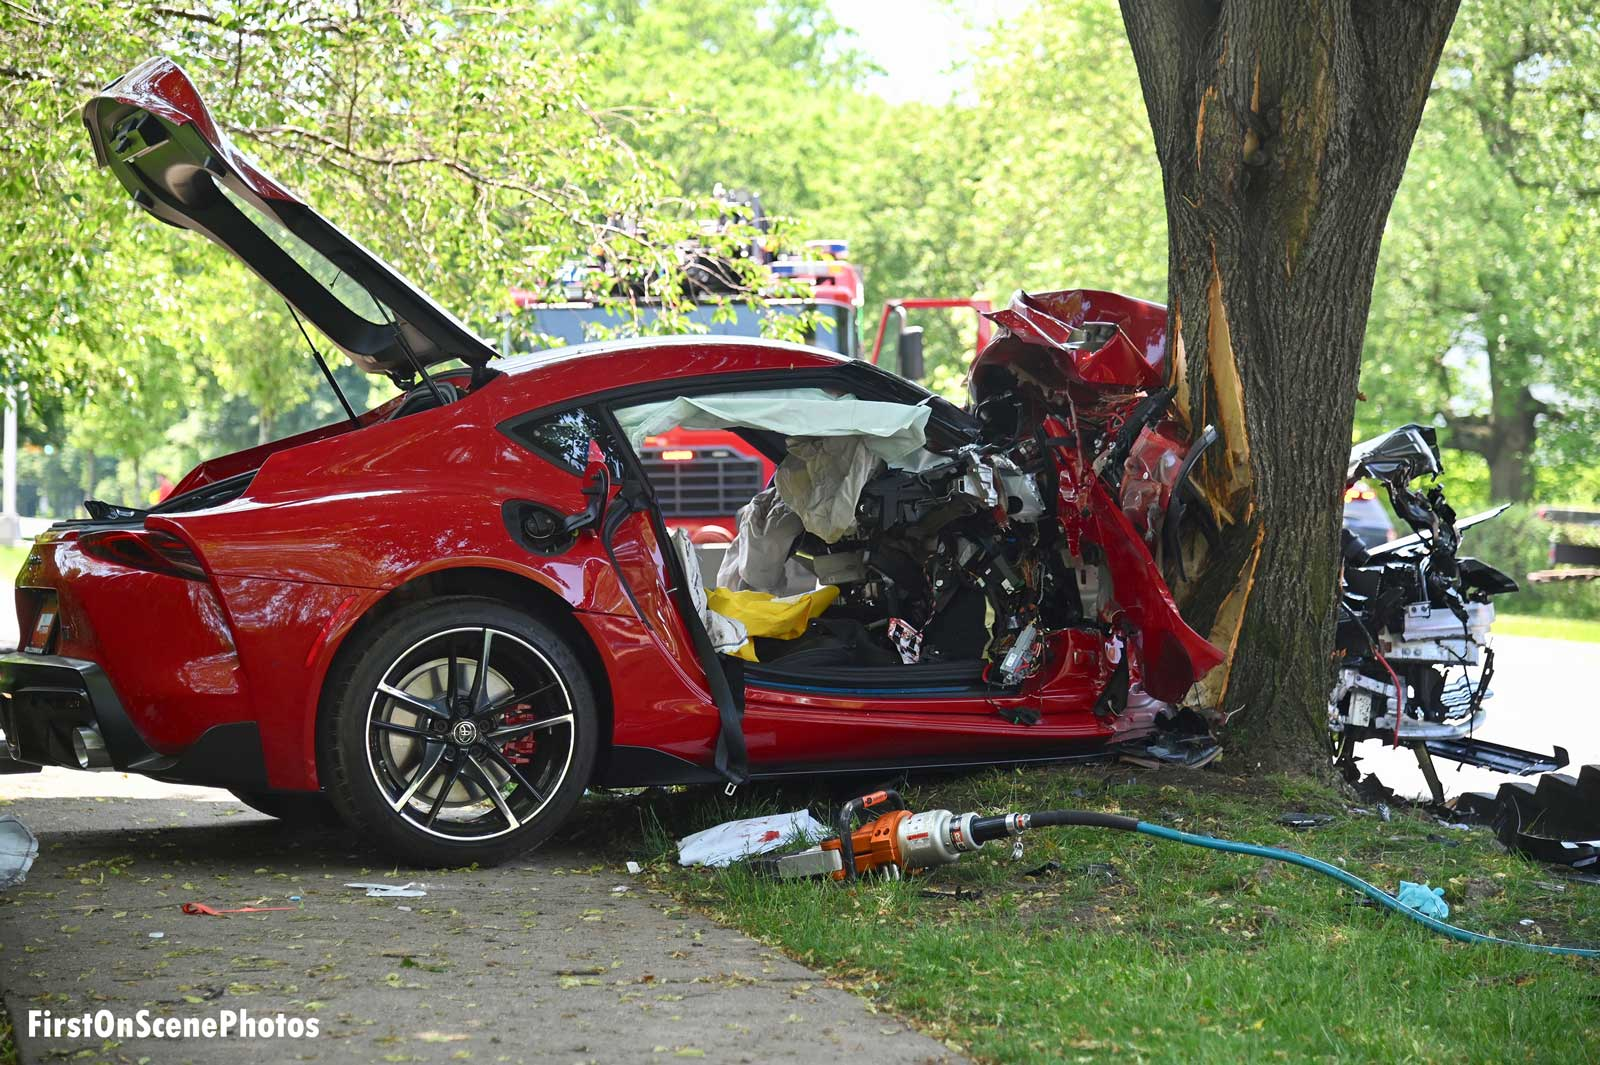 Extrication tool at the scene of the vehicle